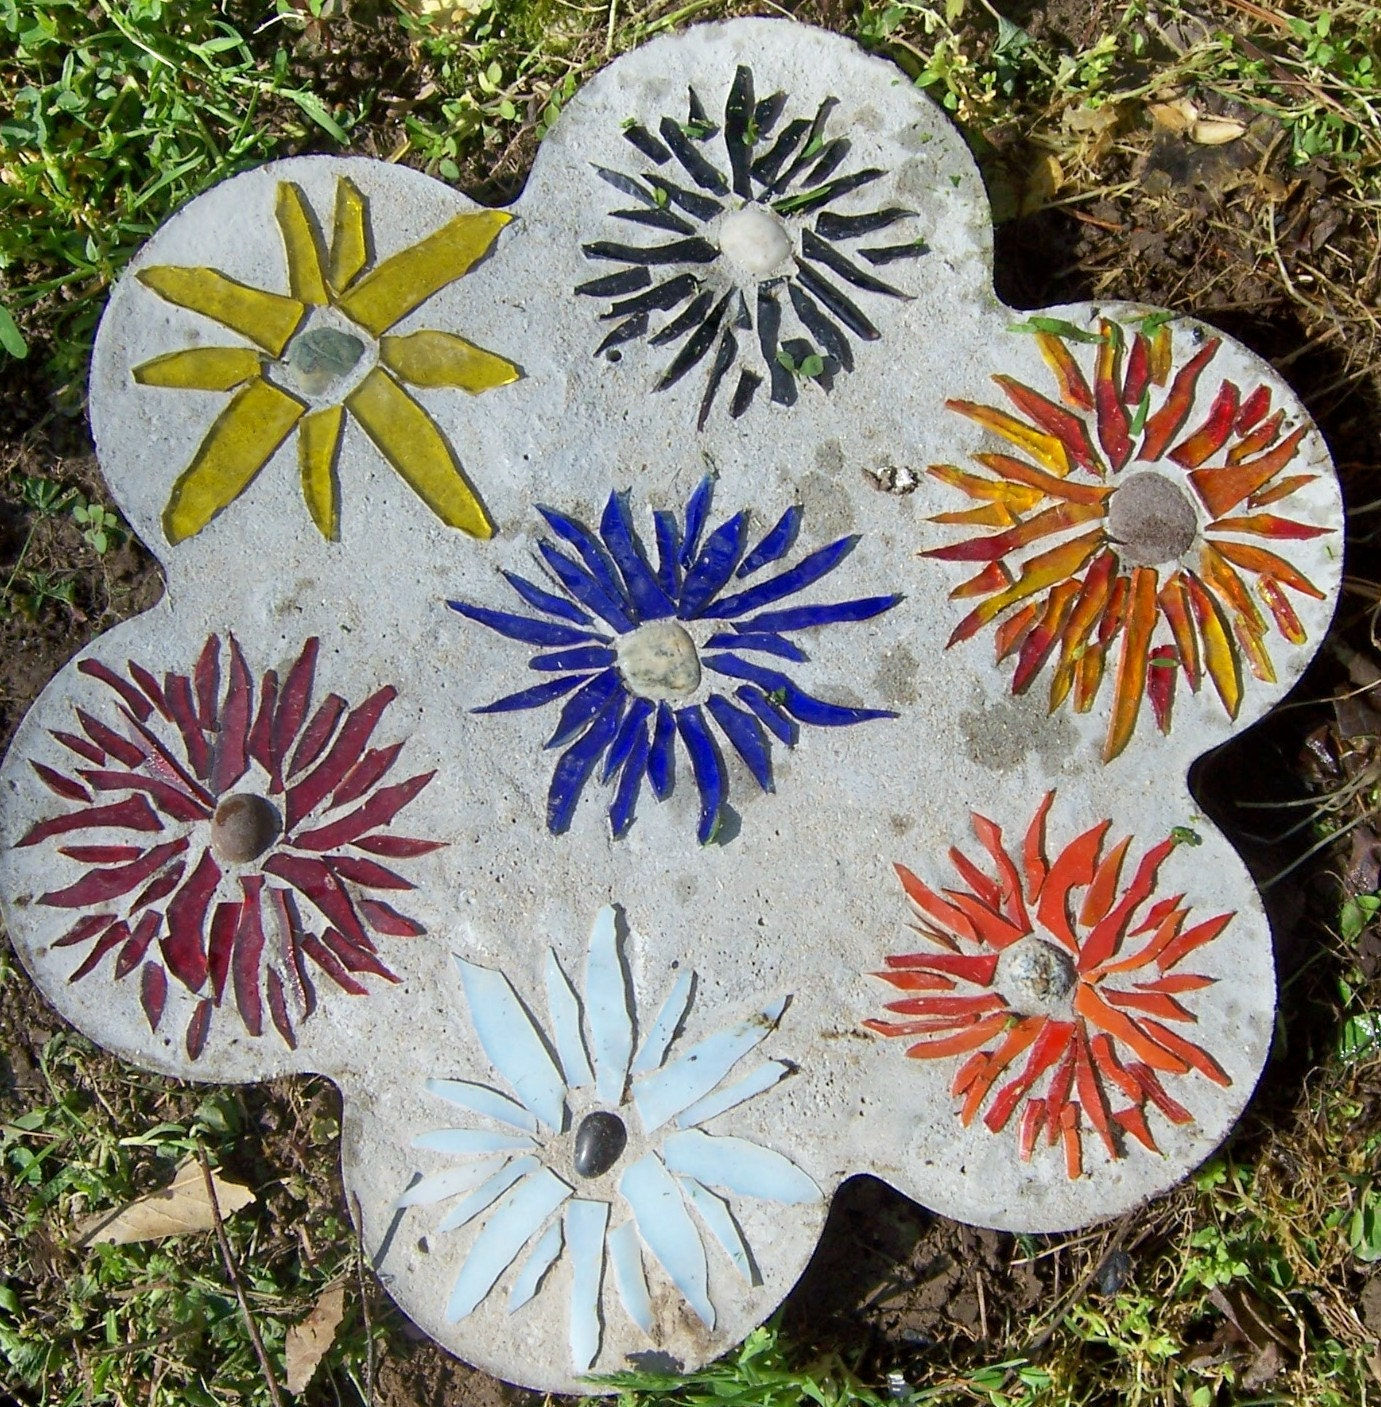 Mosaic Garden Stones: Stained Glass Mosaic Garden Stepping Stone With Floral Spray